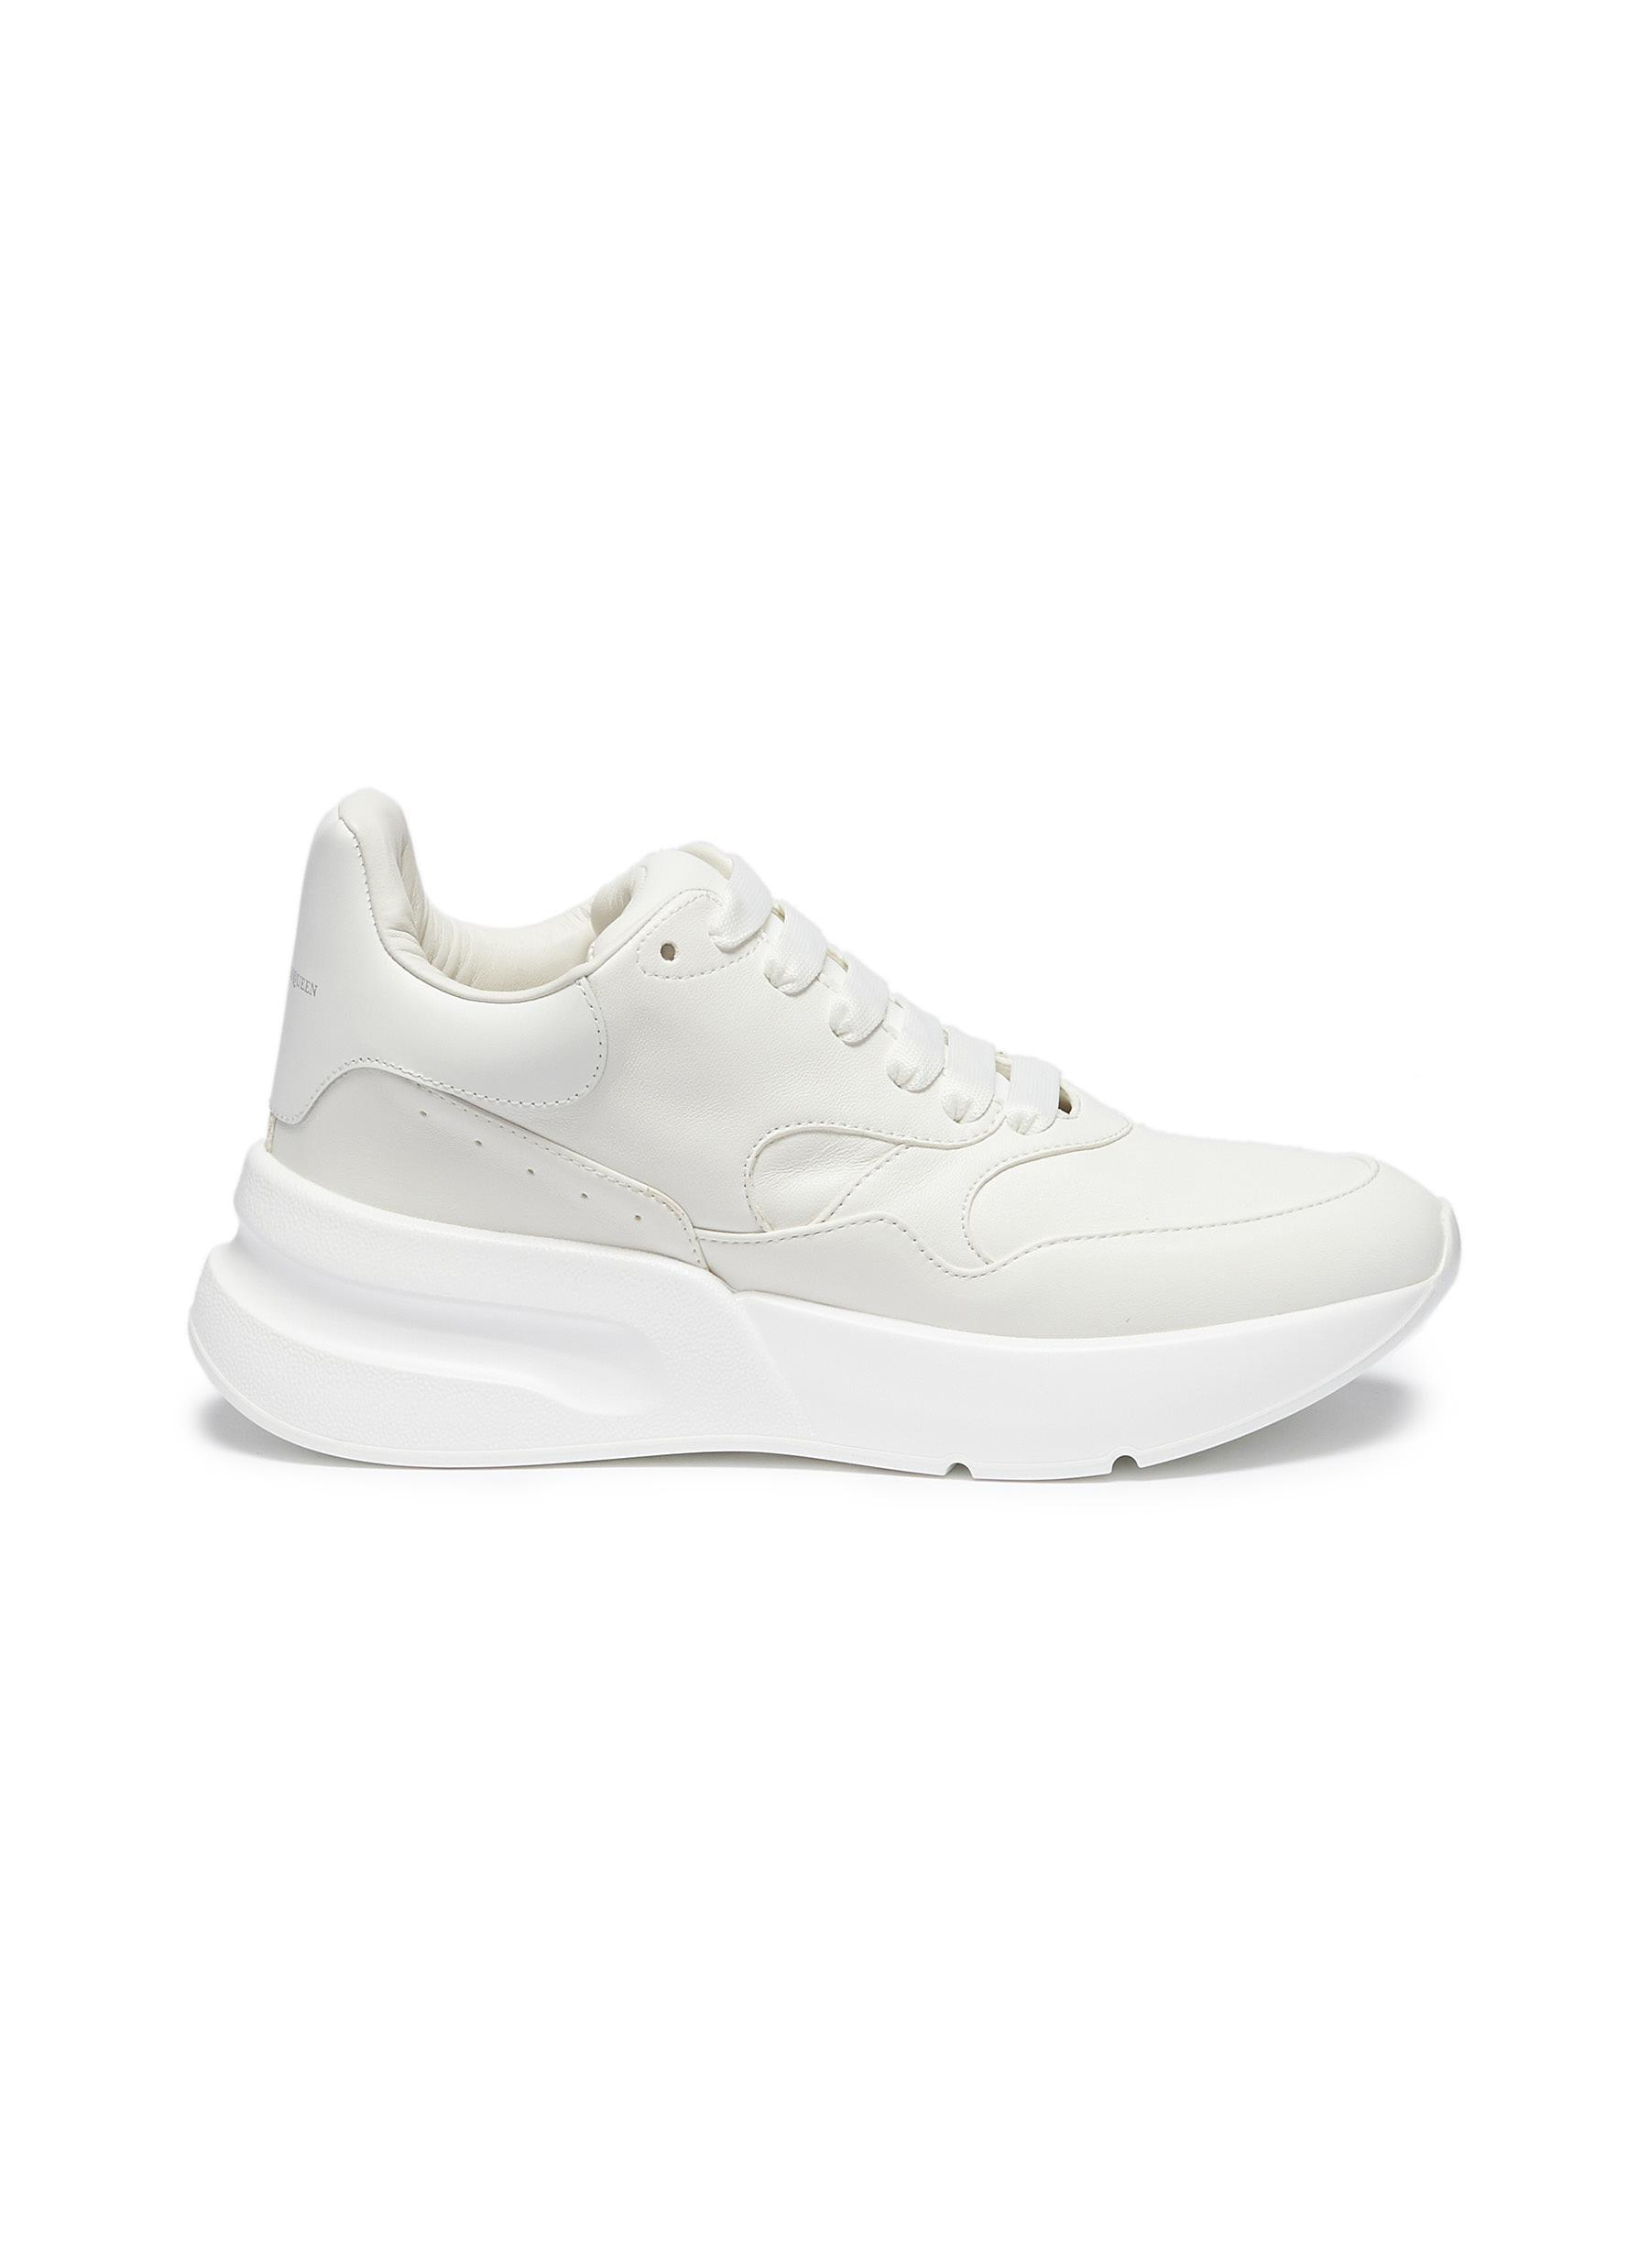 34ed8ad6f8f3 Lyst - Alexander Mcqueen Chunky Outsole Leather Sneakers in White